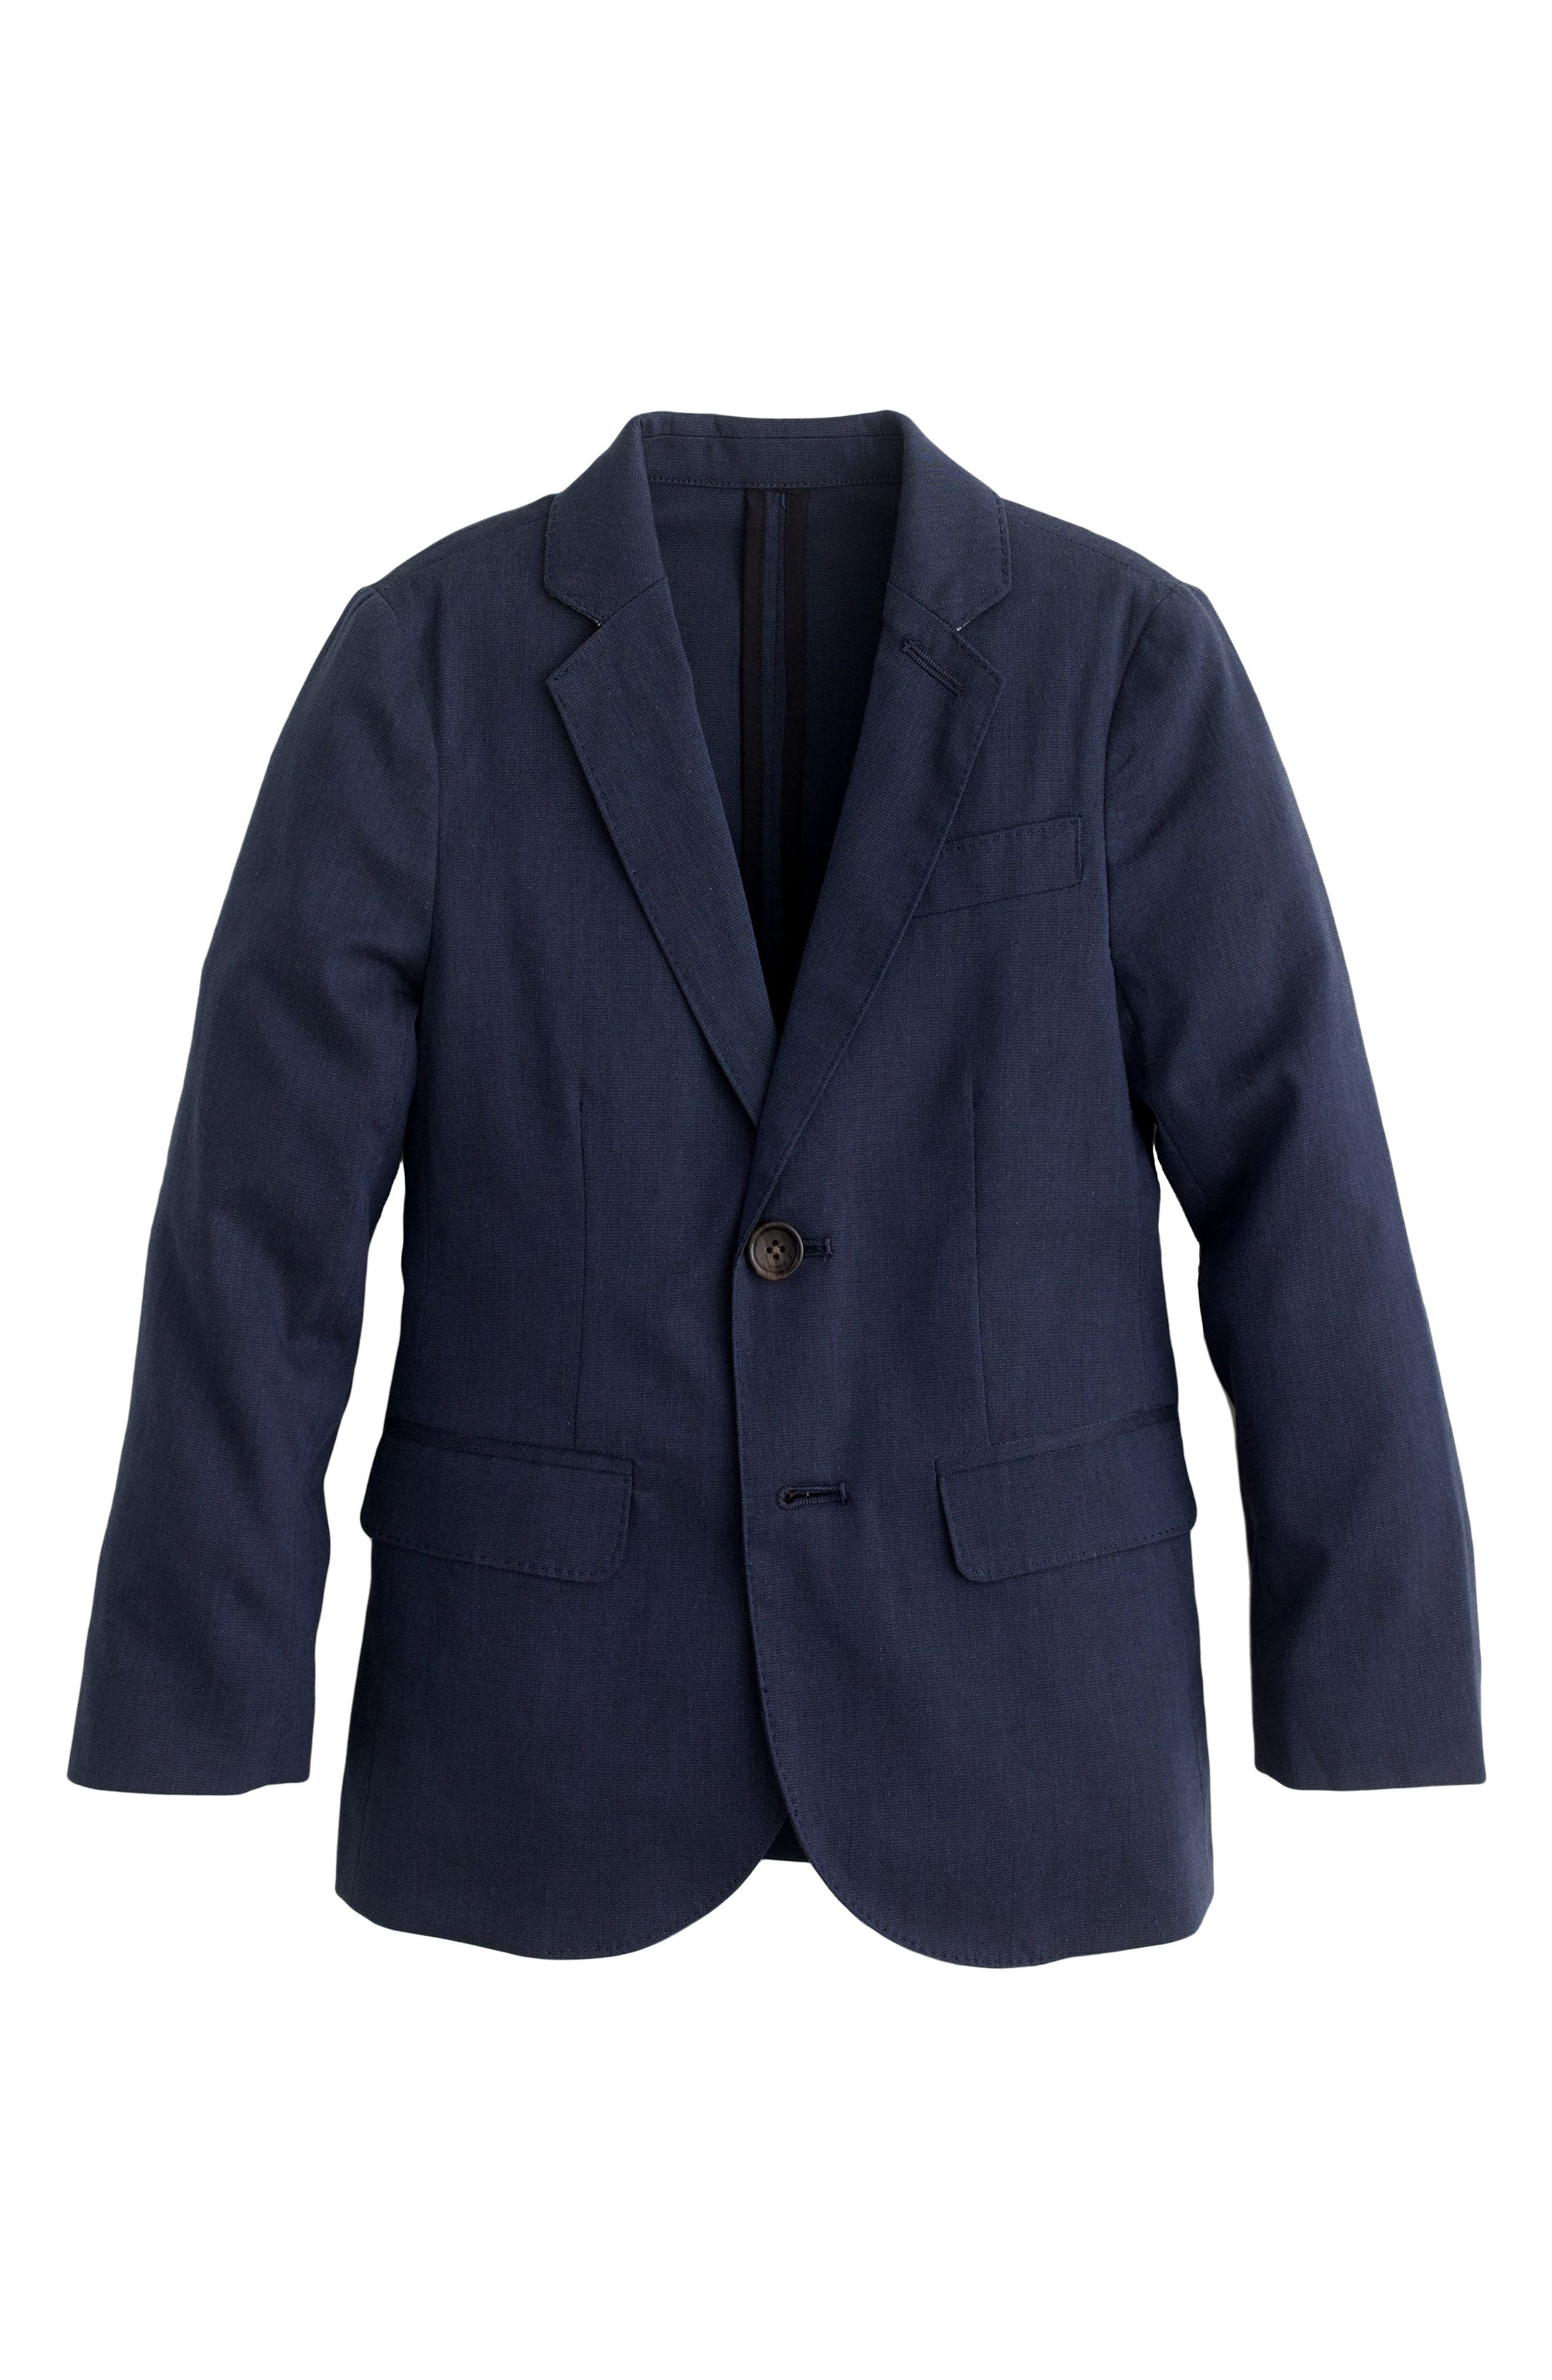 crewcuts by J.Crew Ludlow Unstructured Suit Jacket (Toddler Boys, Little Boys & Big Boys)